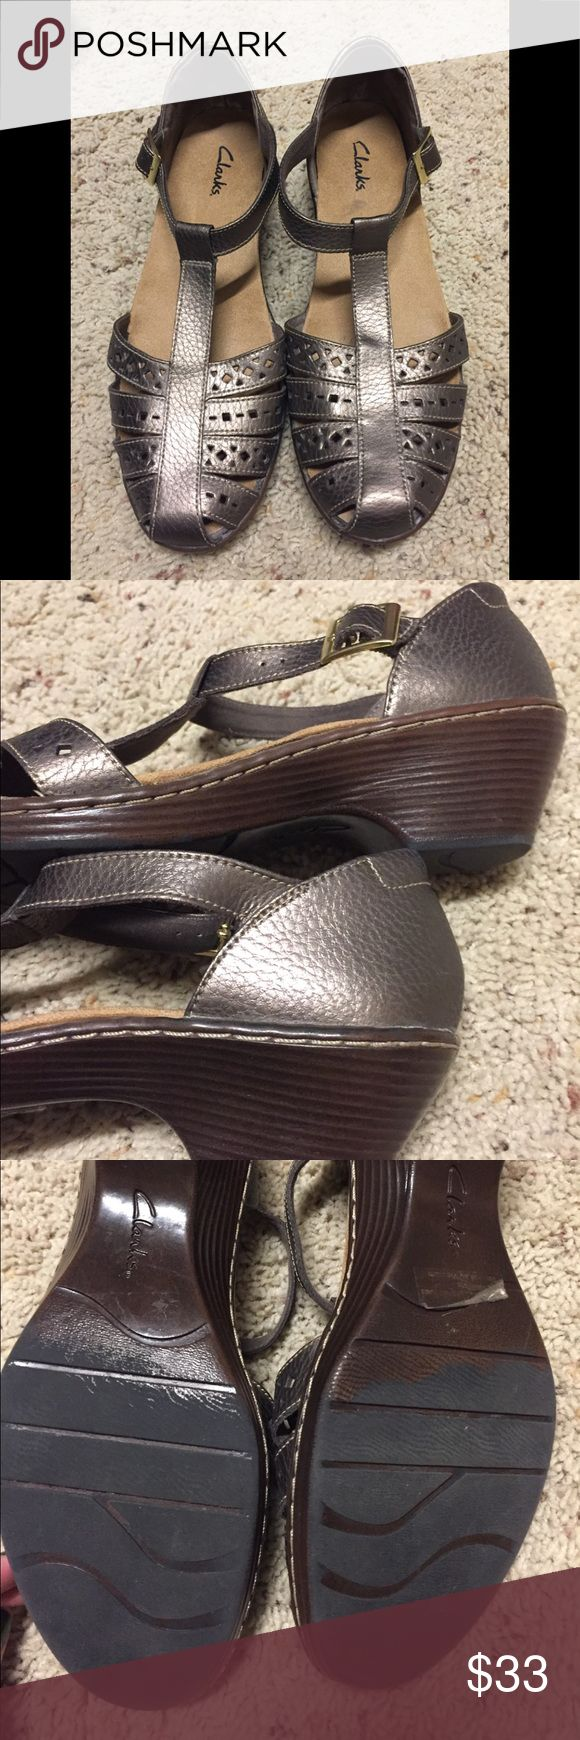 Clarks metallic pewter sandal Like new pewter metallic shoe. Closed toe, small wedgish heel and ankle strap. Clarks Shoes Sandals